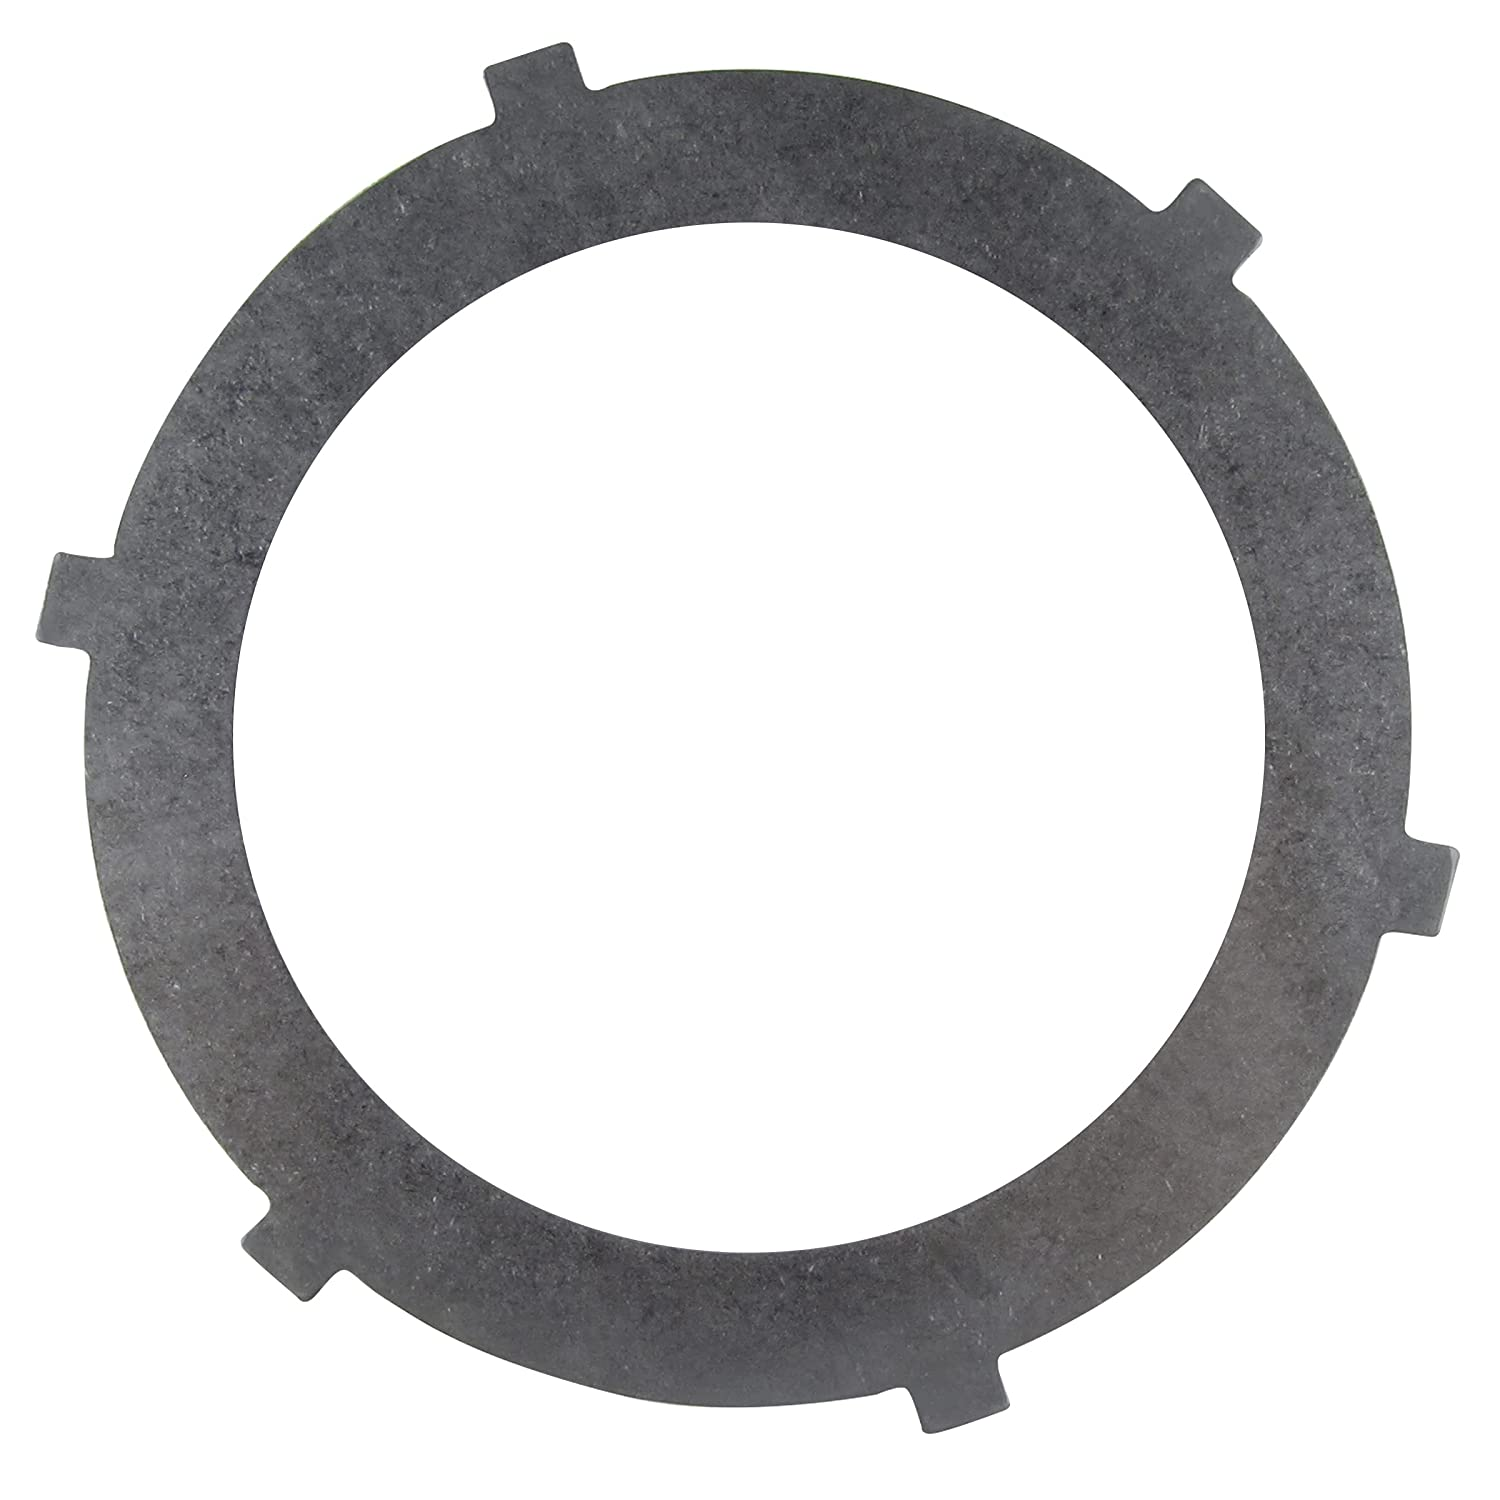 Steel Clutch J.I. CASE 381489R3 306701 # Spring new work quality assurance Replaced Alto by